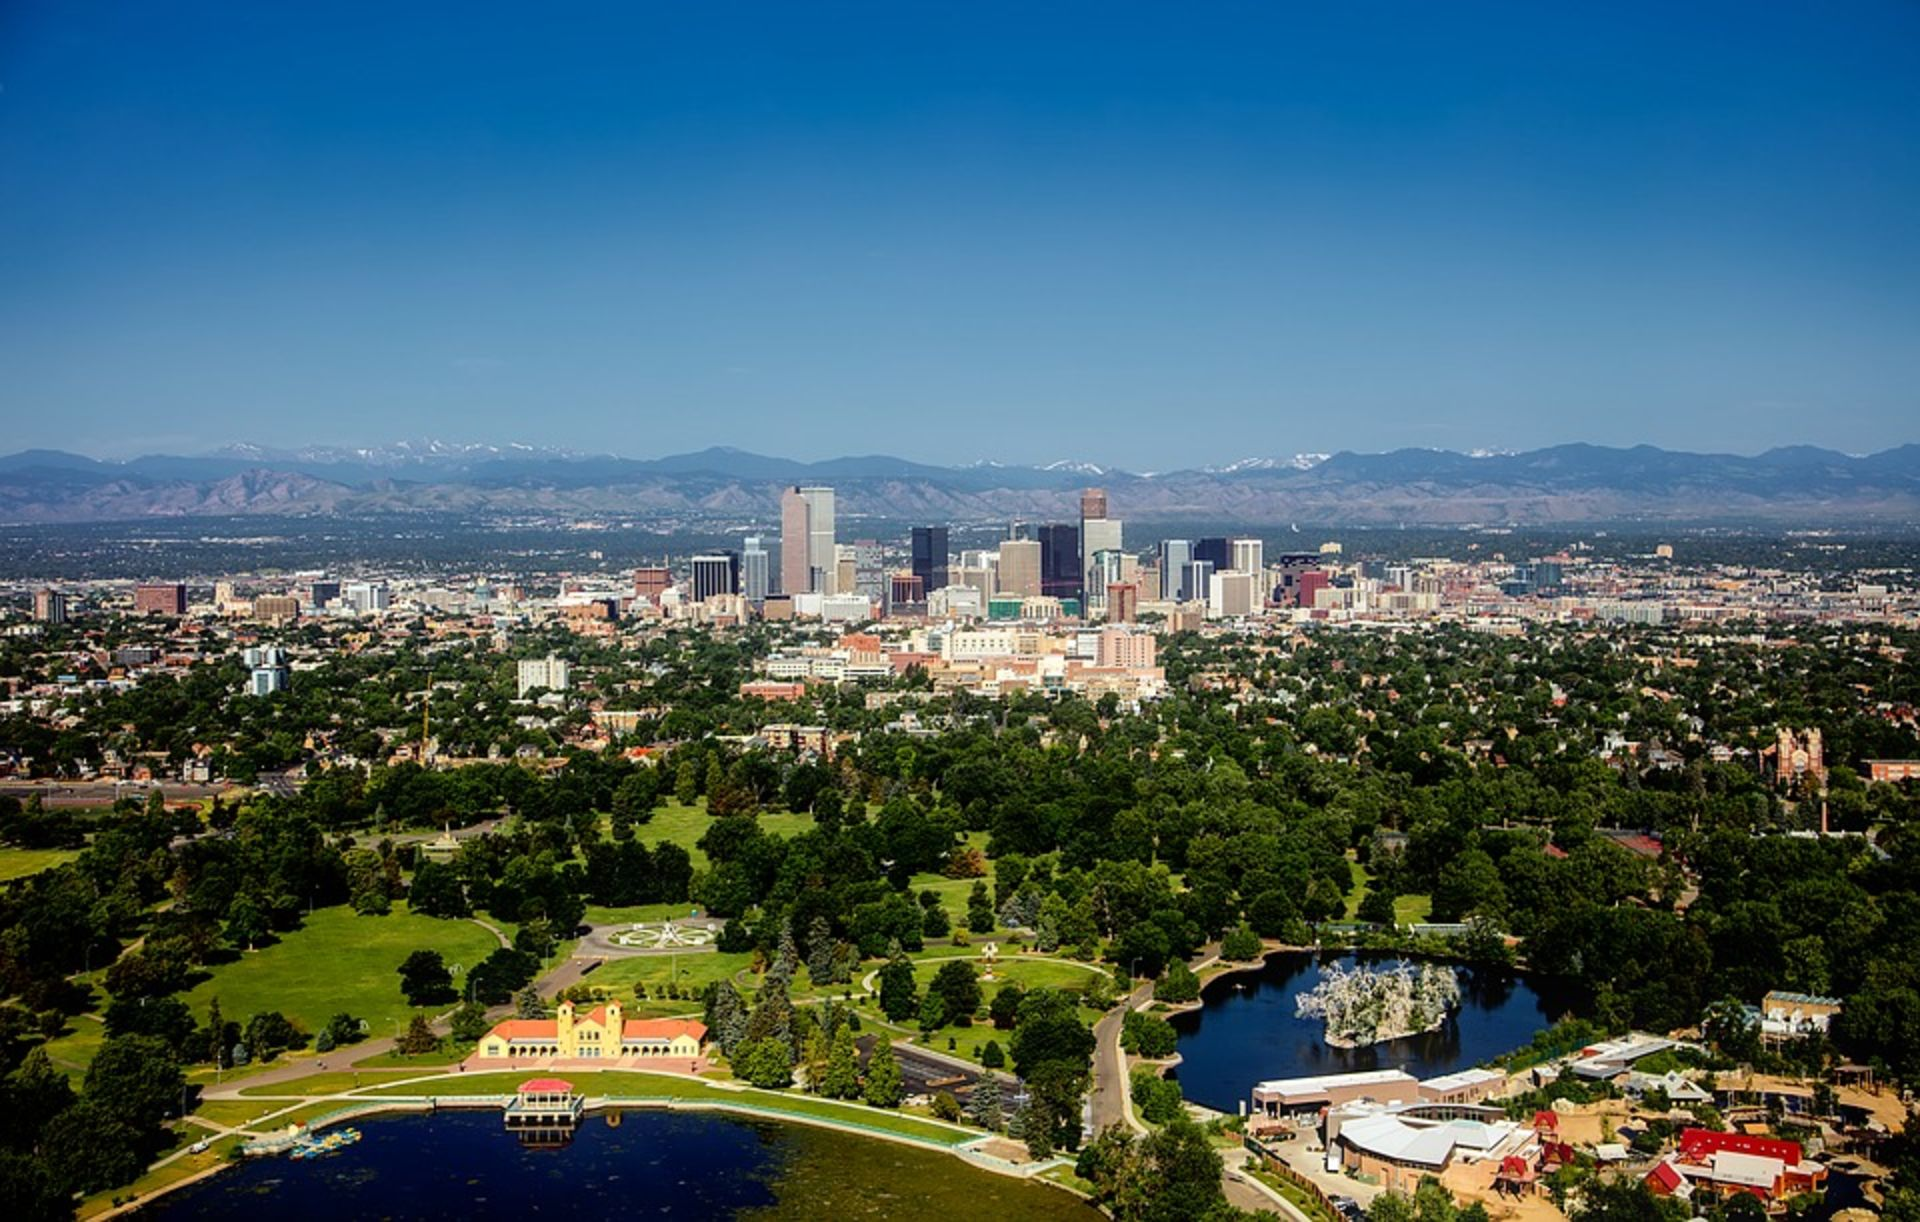 Denver among the top cities to live in